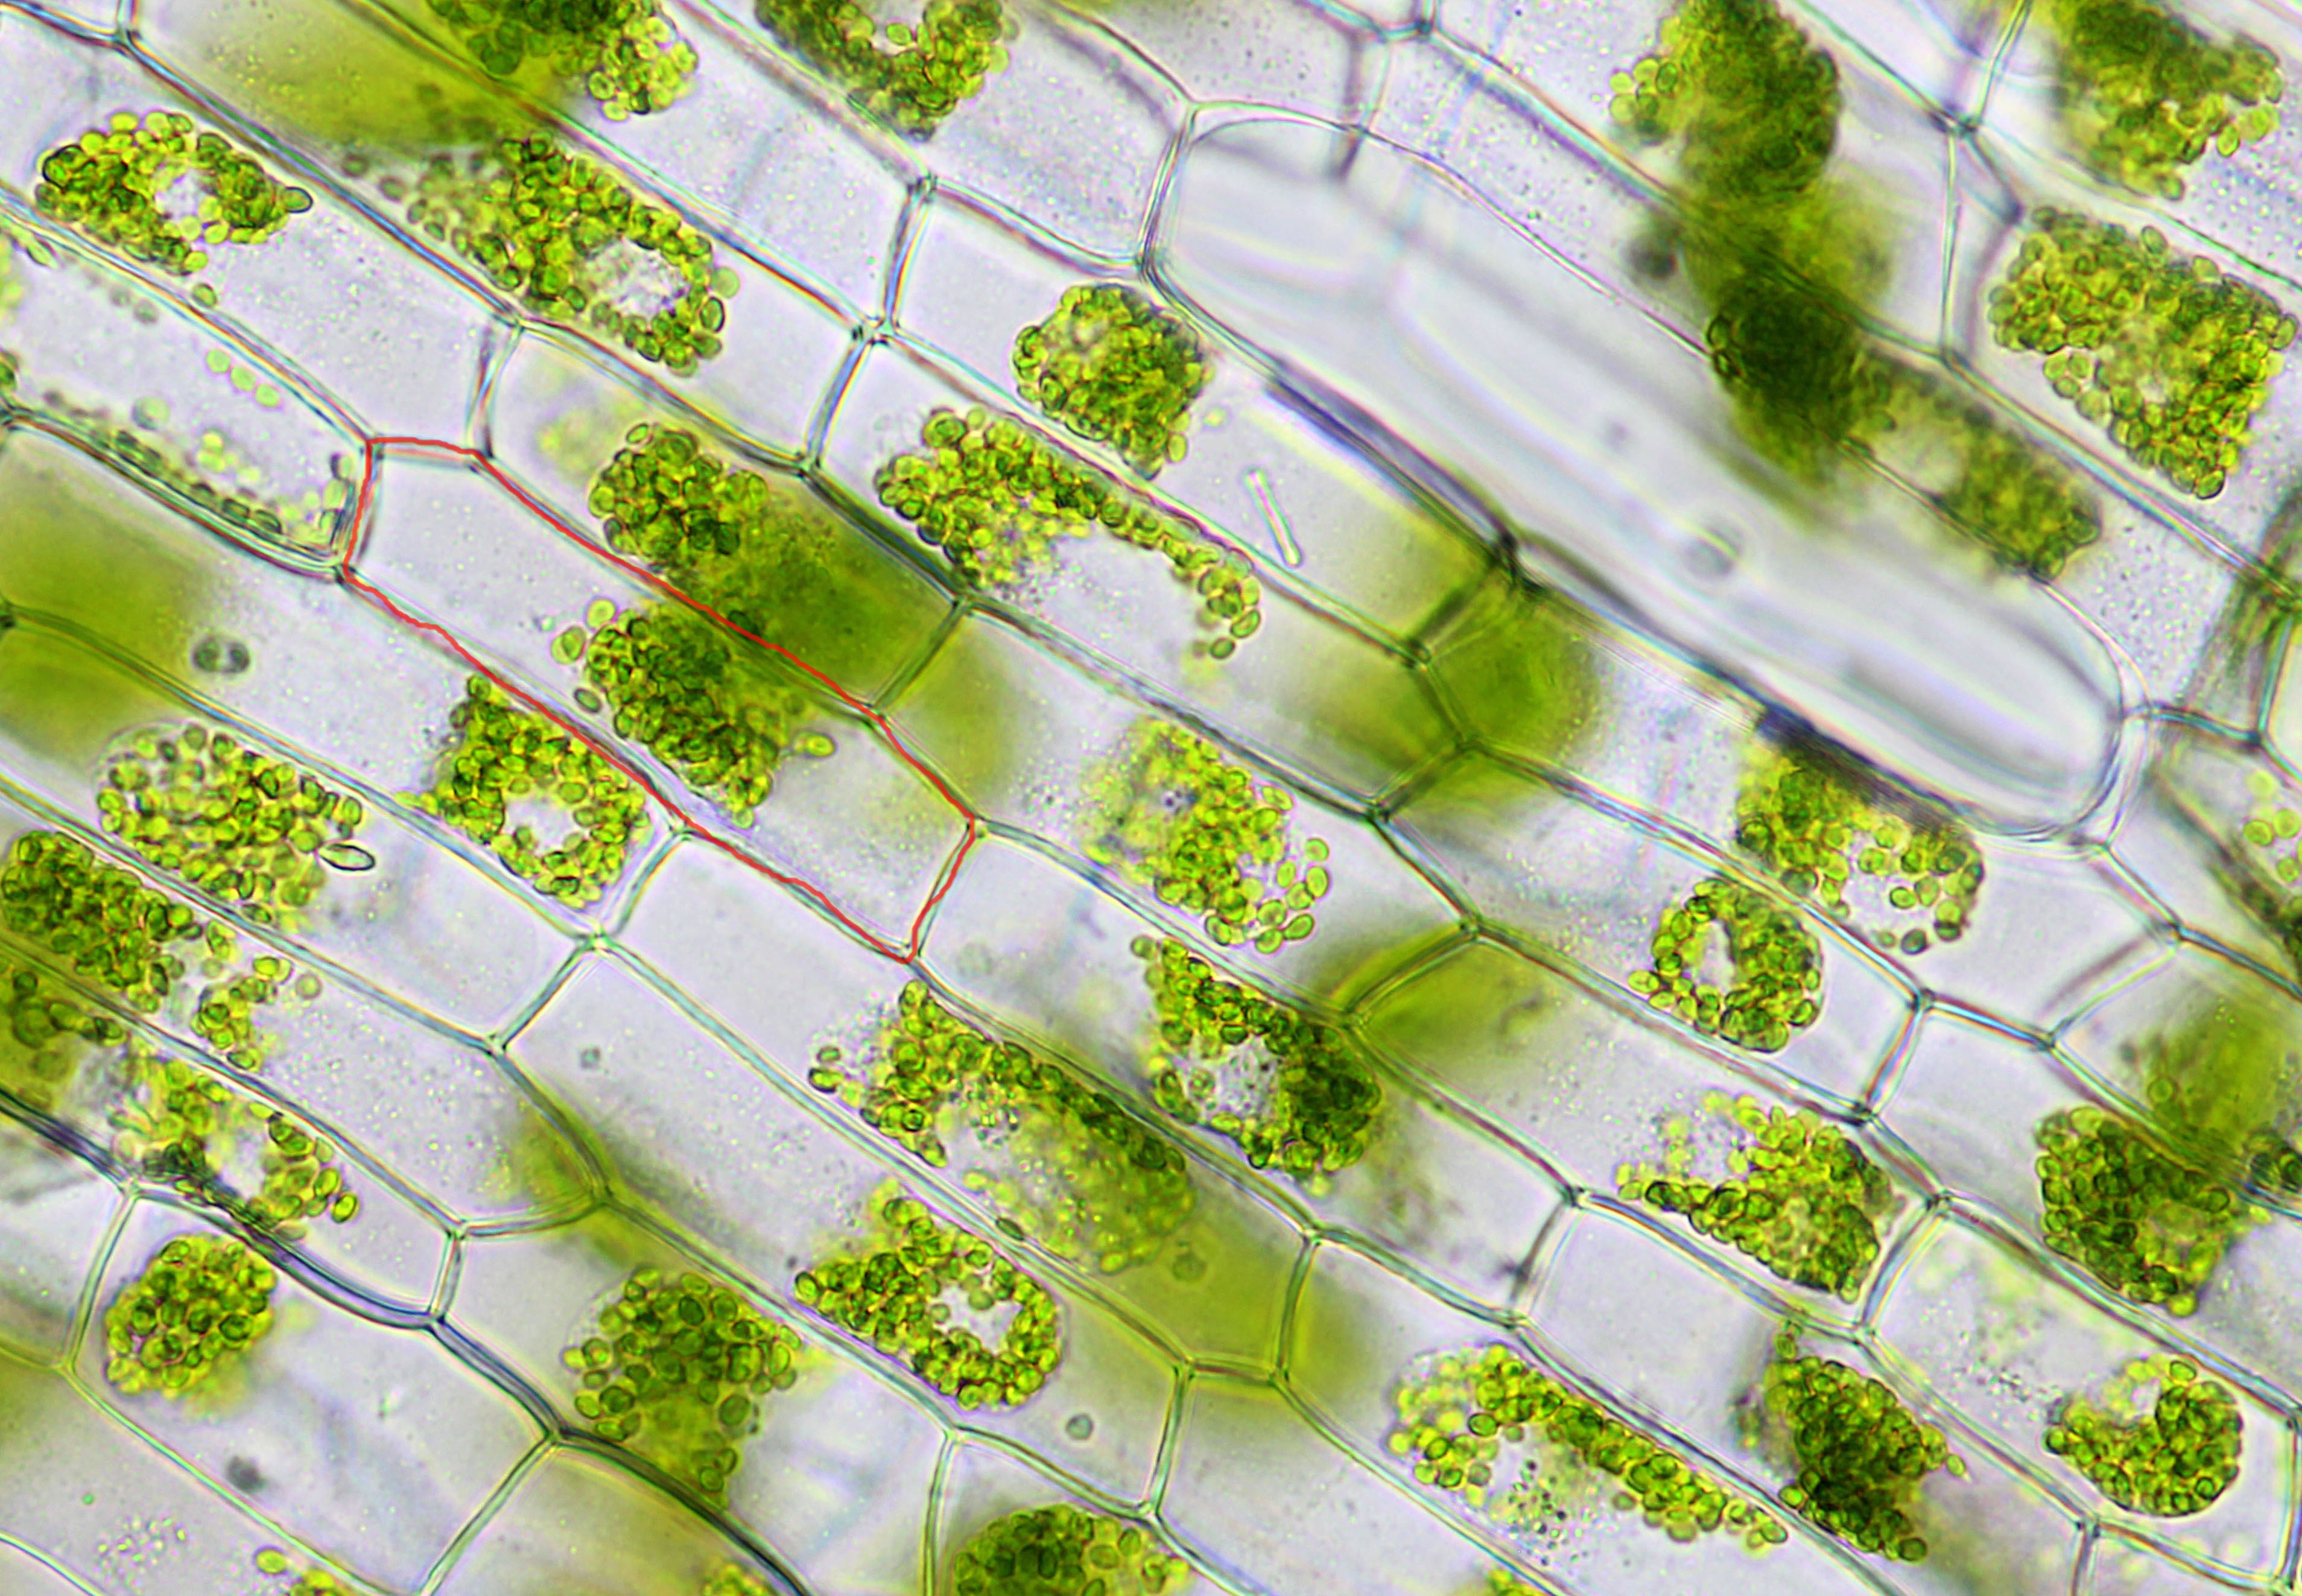 Elodea Leaf Cell Under Microscope Elodea Leaf Cells in Hypotonic